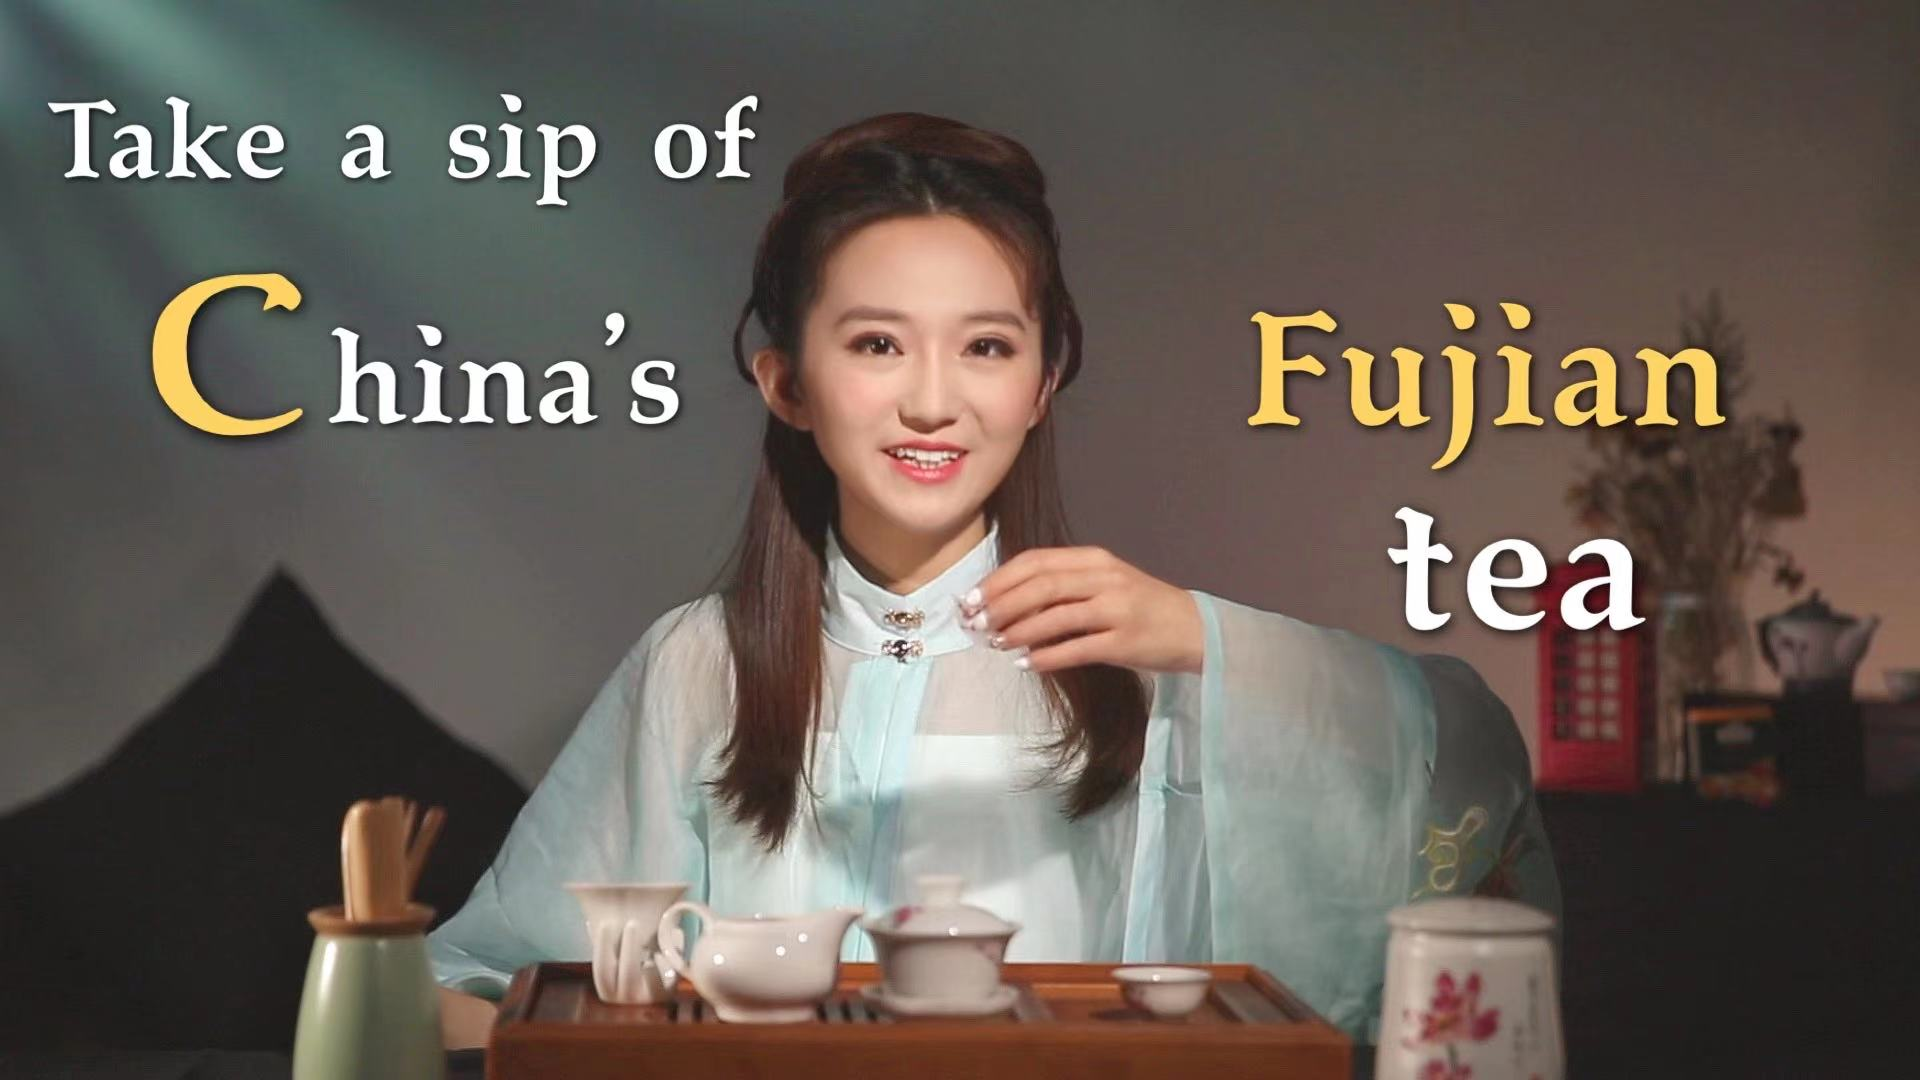 GLOBALink | Take a sip of China's Fujian tea